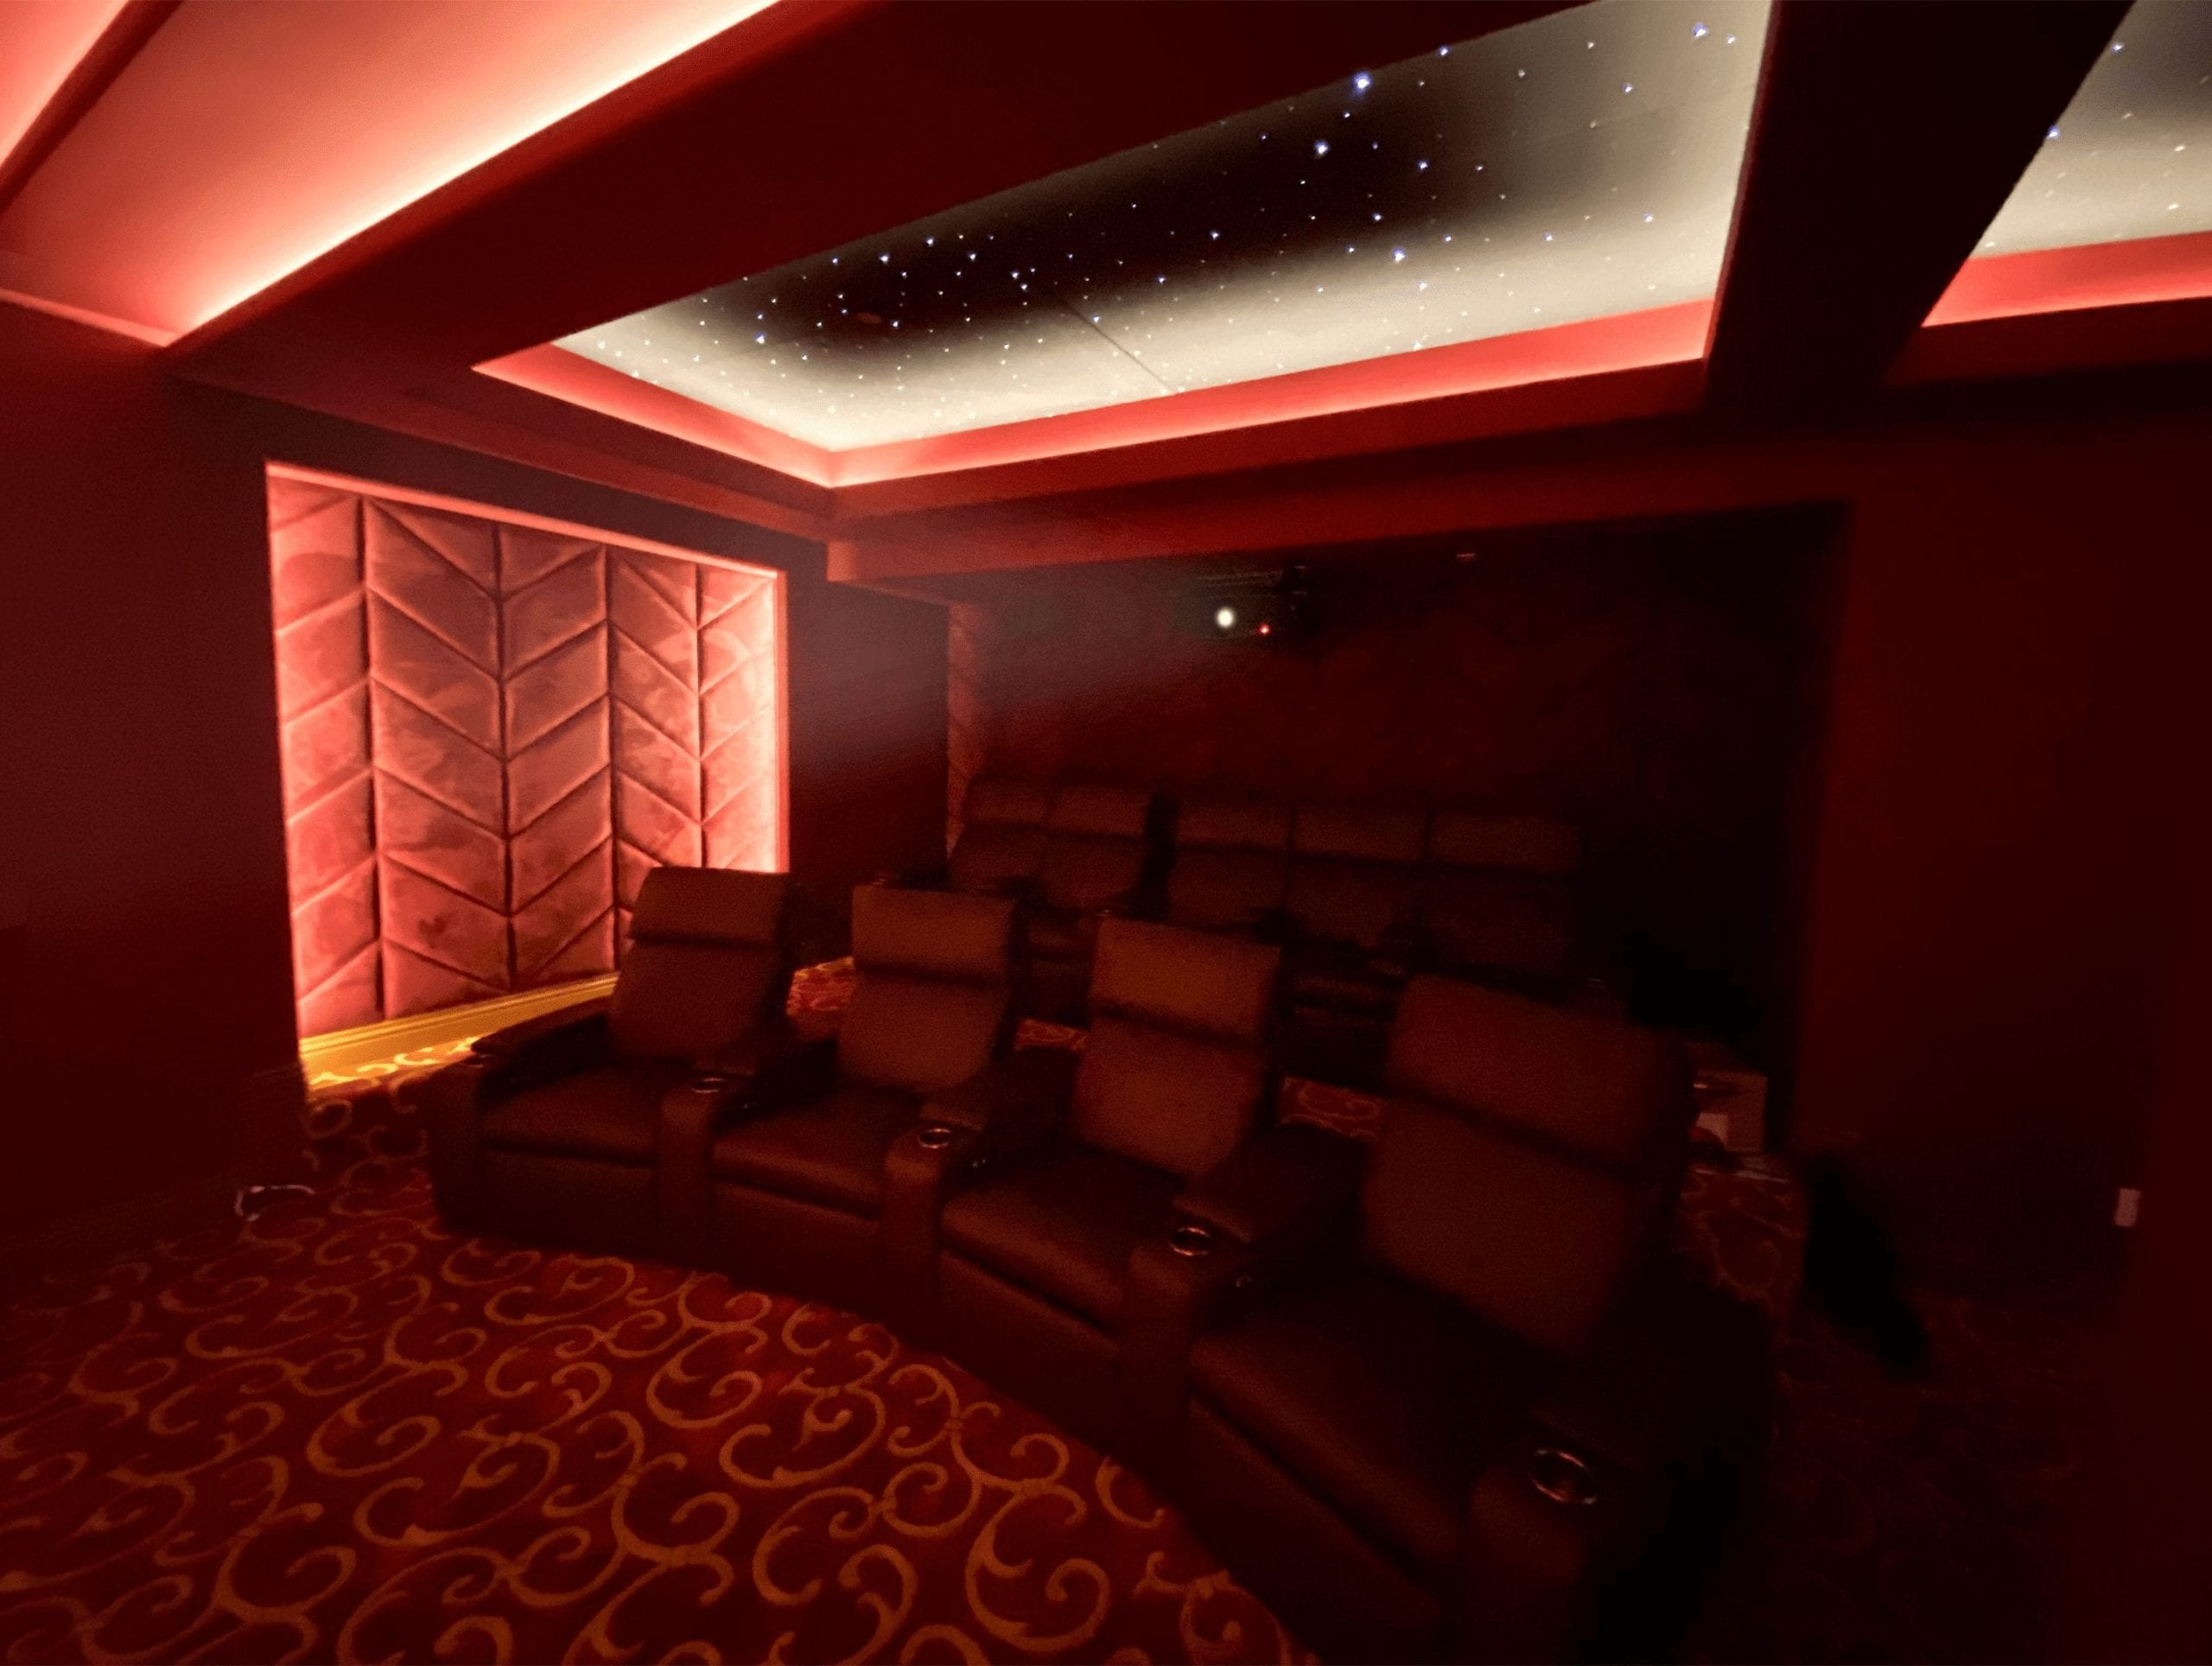 Theater chairs seating red home theater star ceiling